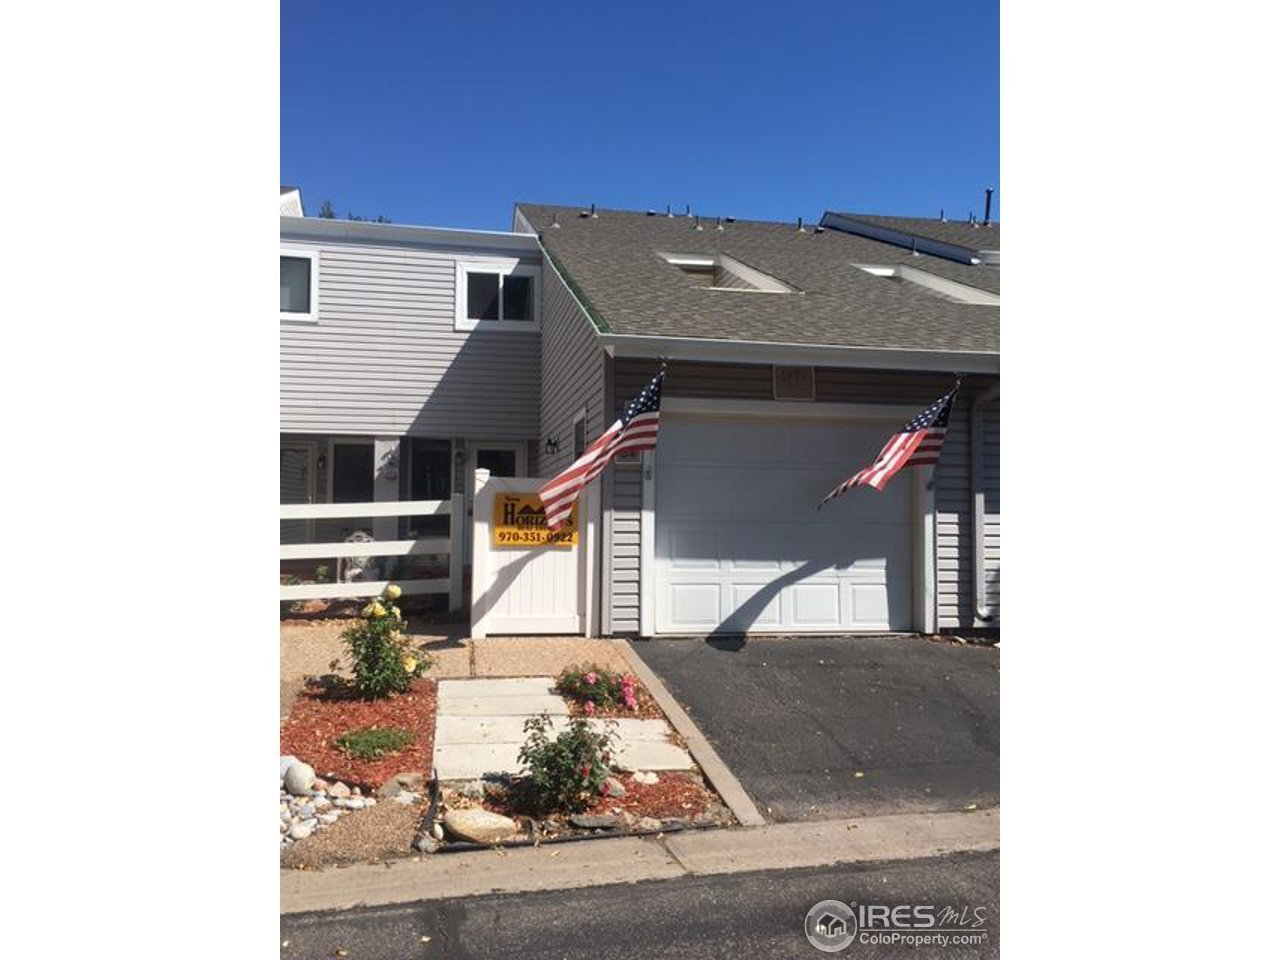 1975 28th ave #34, greeley, co 80634 | mls# 830666 | redfin